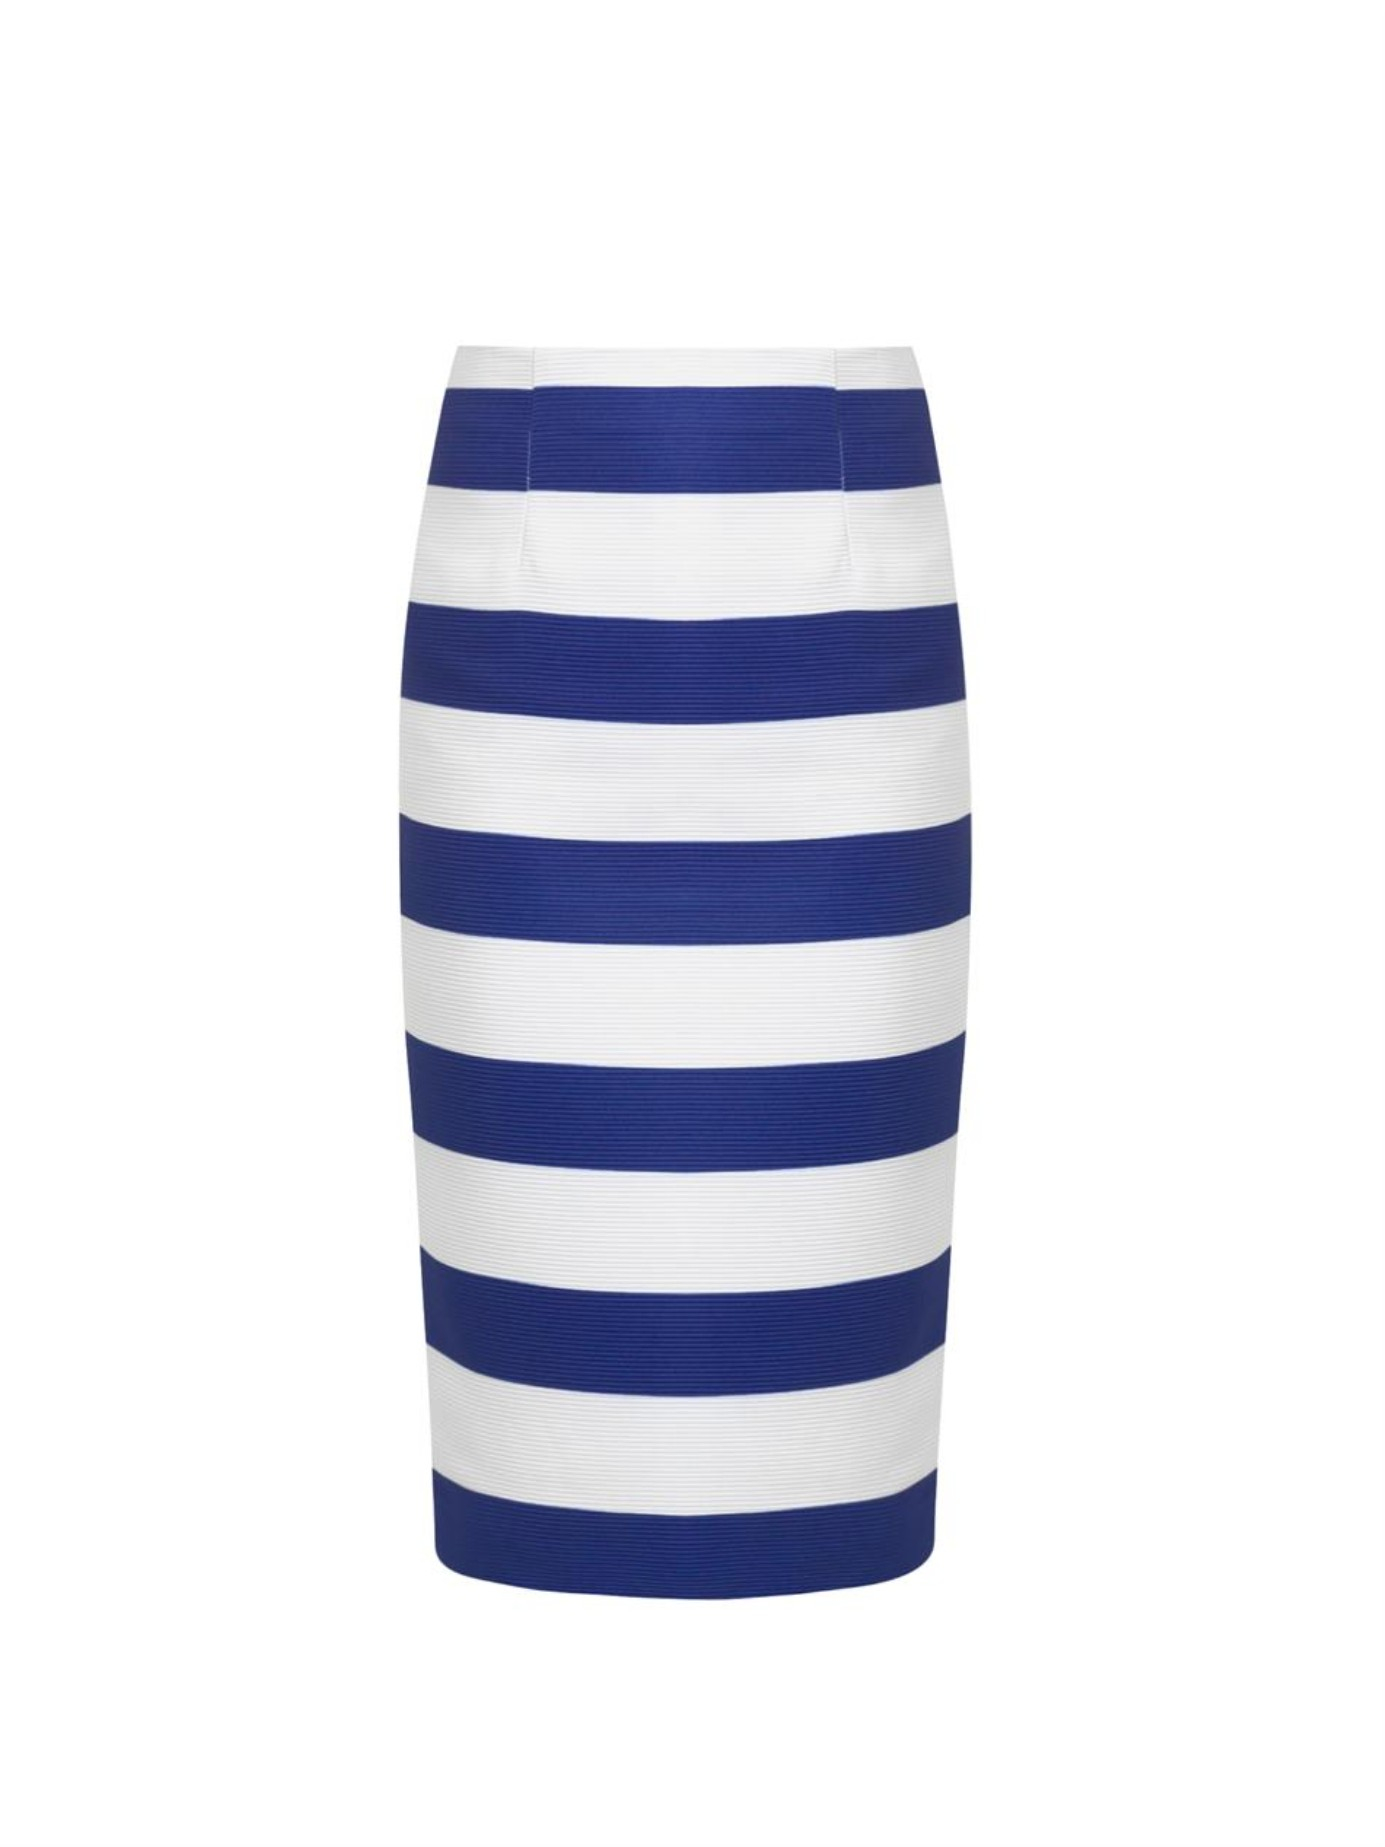 Try it on with white tee tucked in blue-white striped high-rise pencil skirt: A perfect weekends match! Go for pale turquoise cropped sleeveless top and pair it with black and white striped flared skirt.